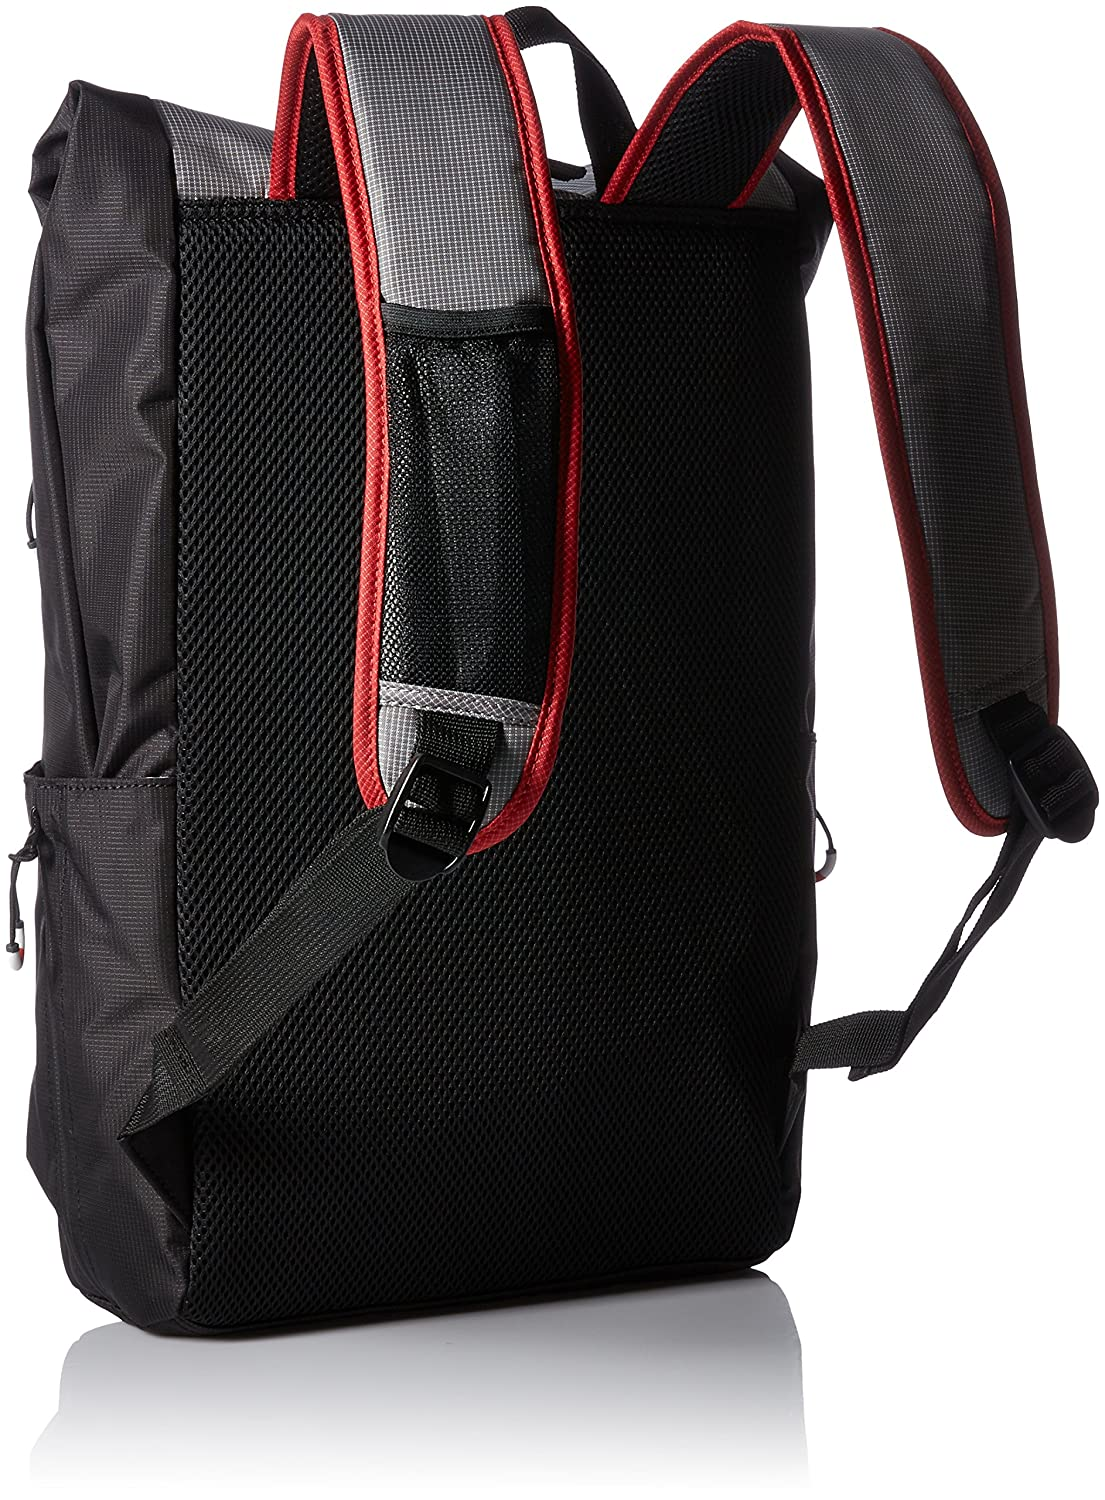 NDK Mens Backpack grey Buxton Men/'s Furnishings MH422.GY